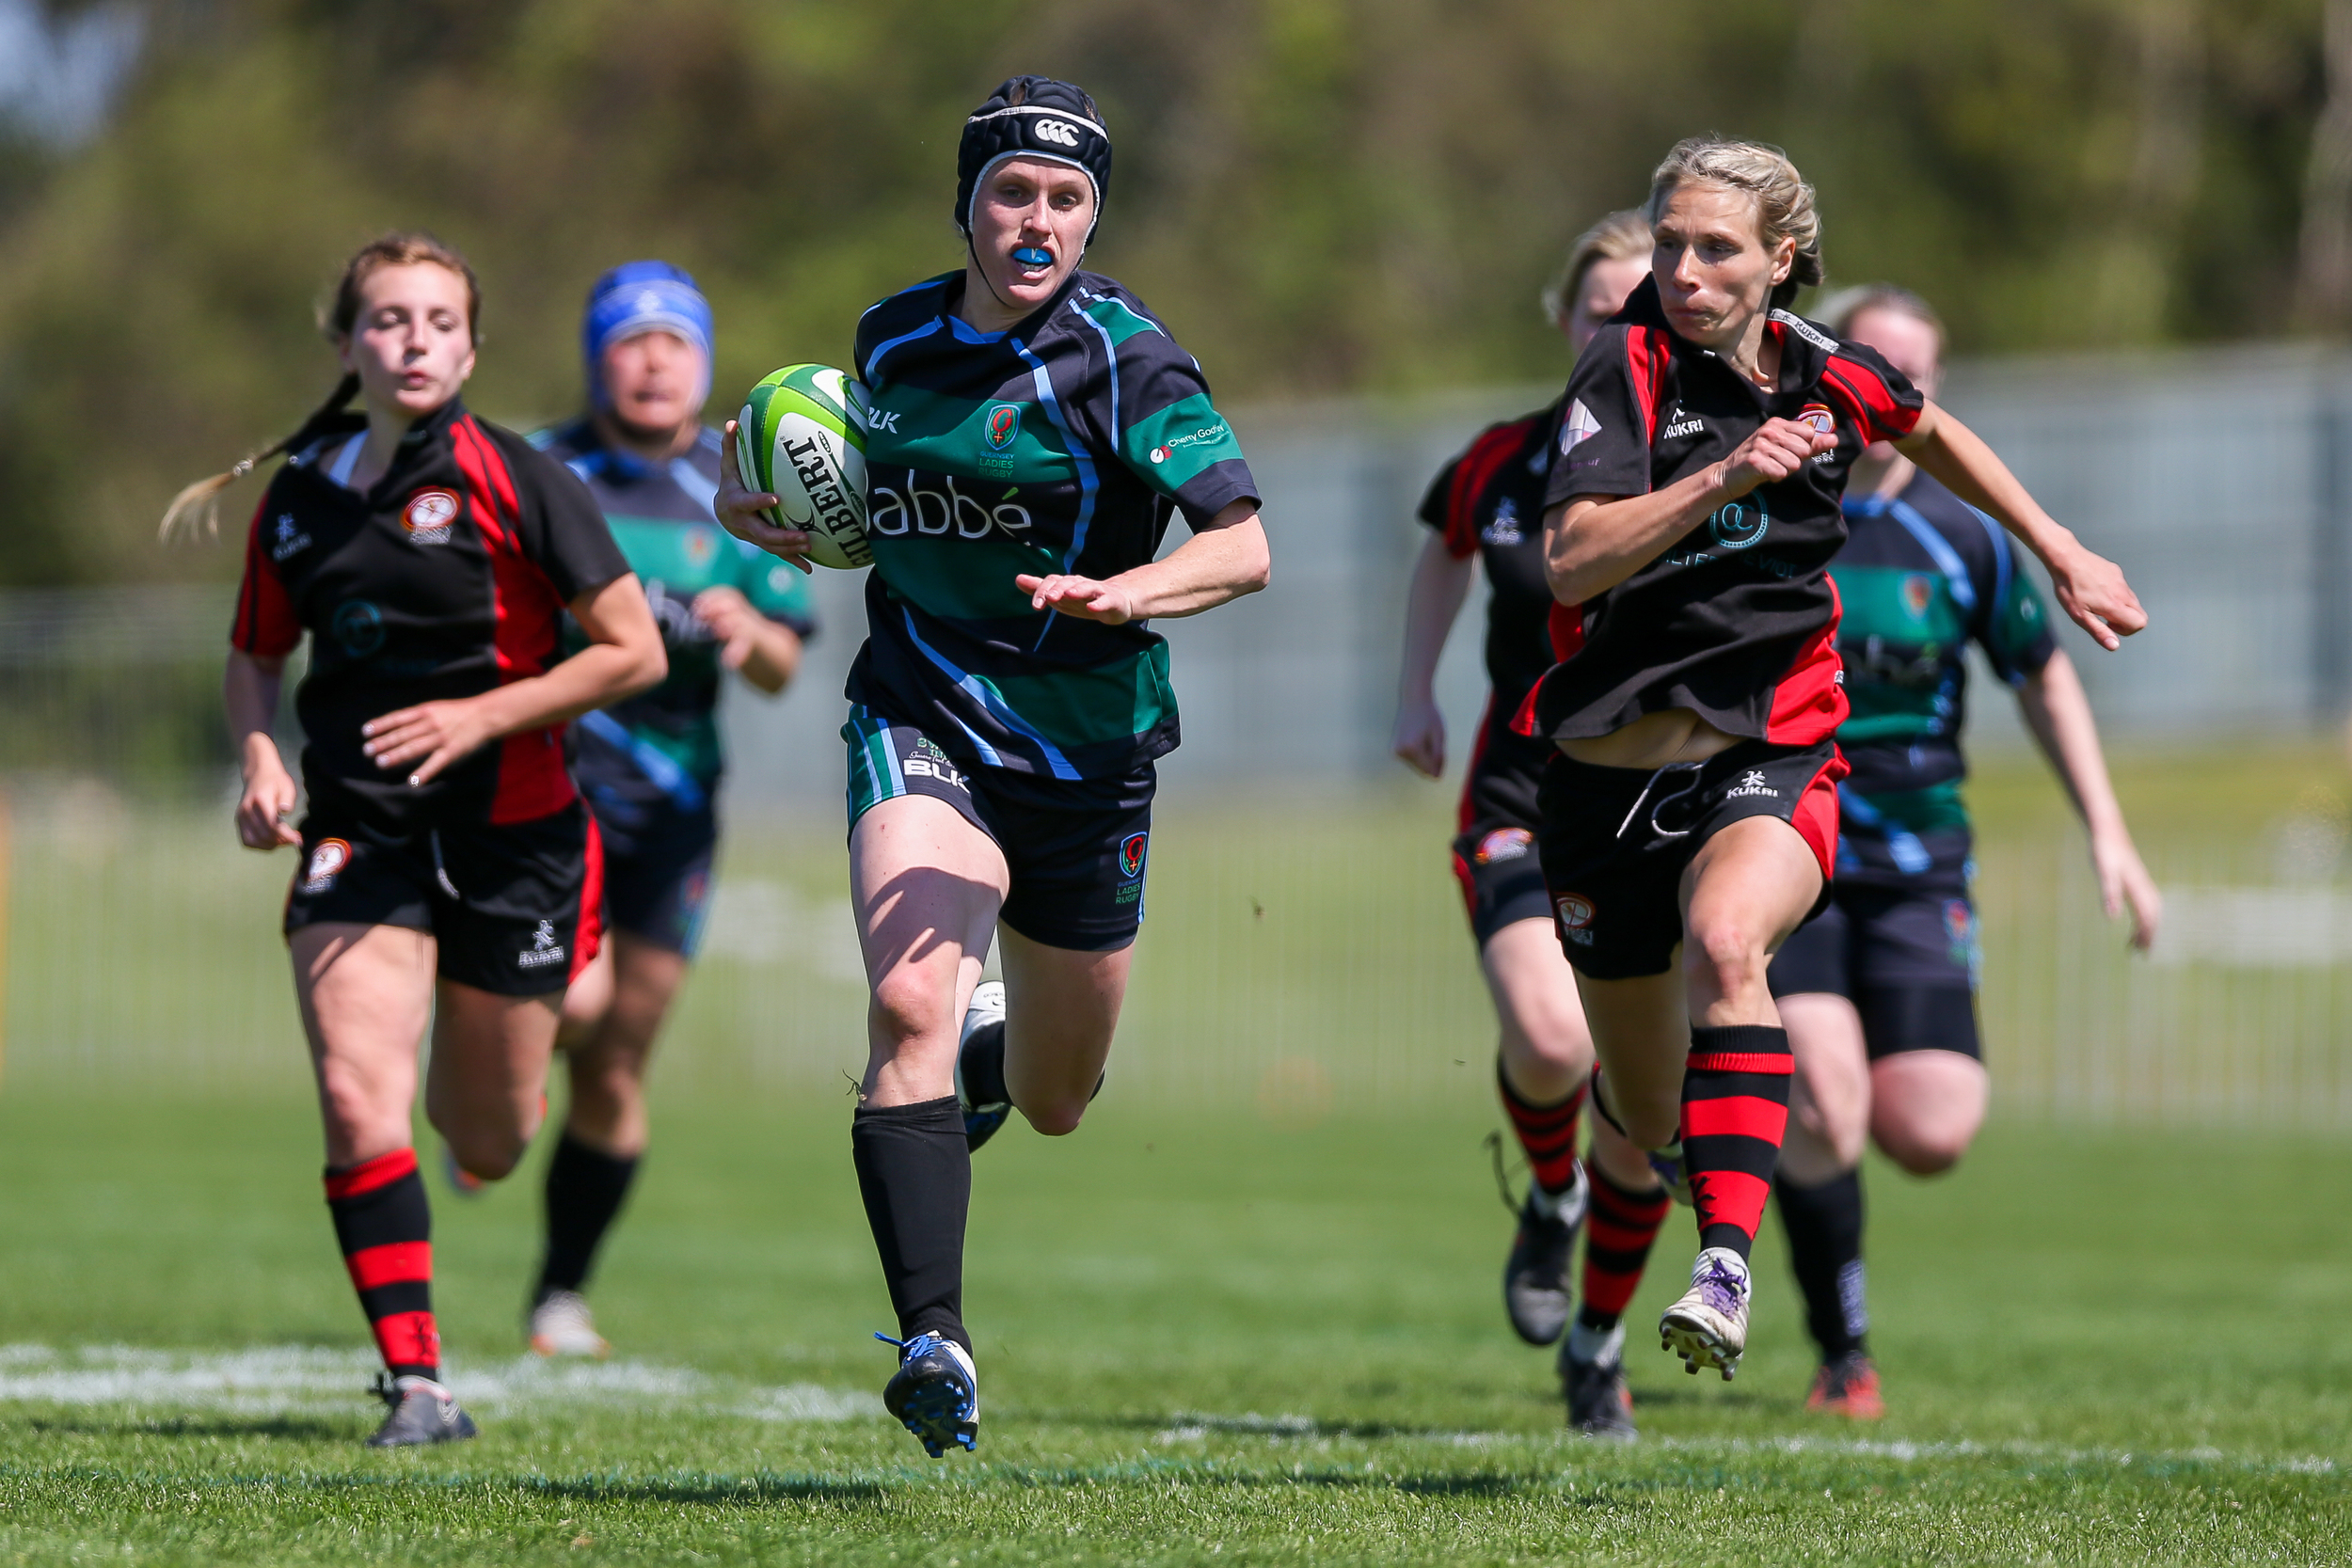 Guernsey Ladies v Jersey Siam 2016... Great performance by GLR in a 41-12 win on the Garenne pitch...